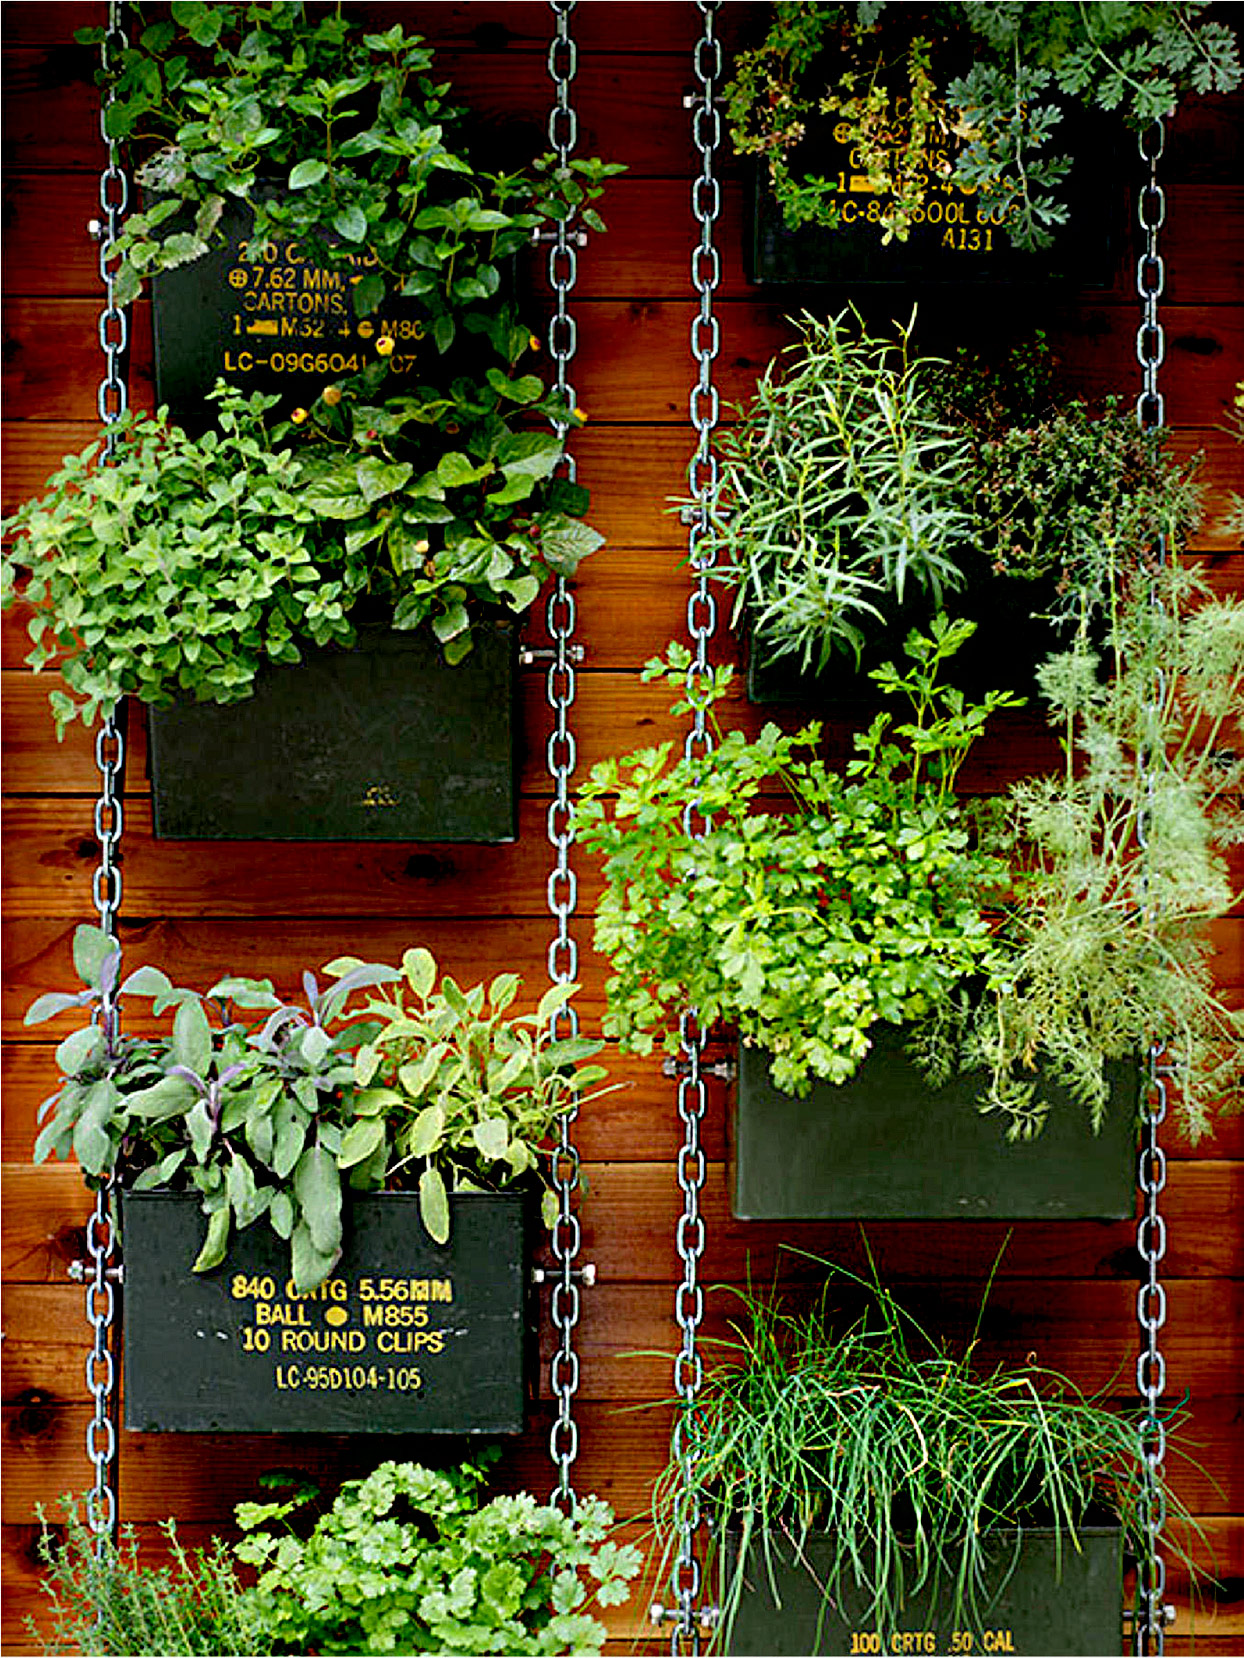 Plants in ammunition containers hanging on chains